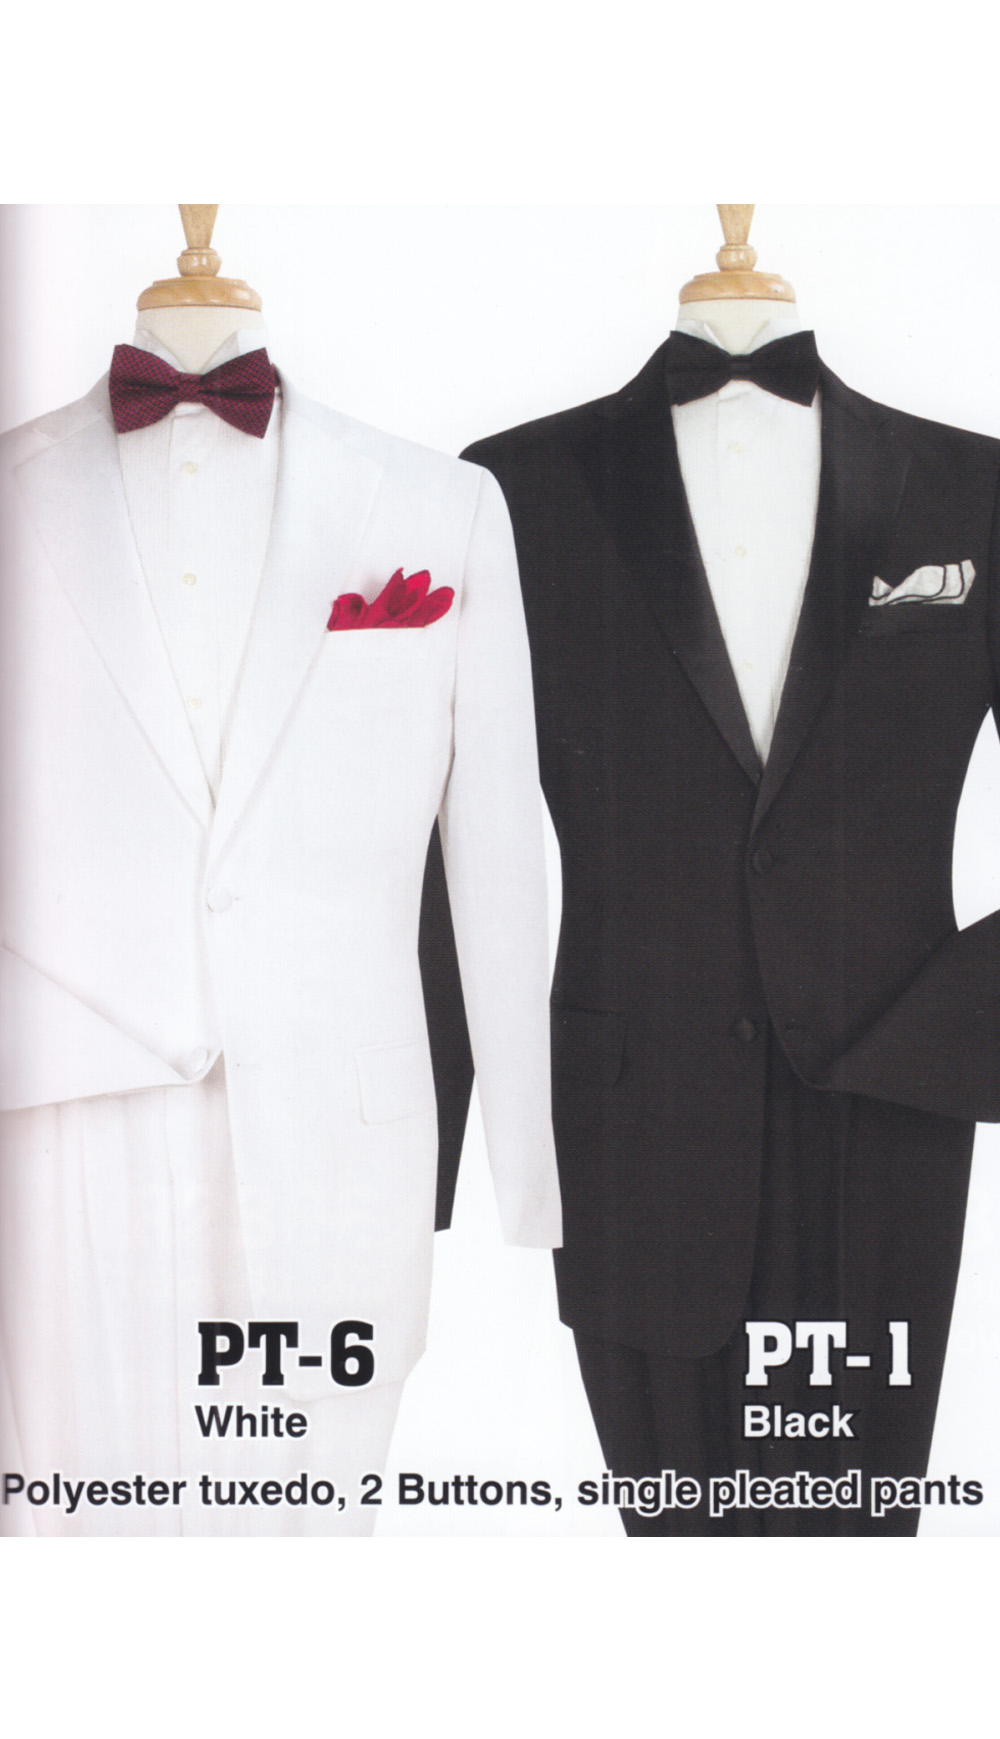 High Fashion Men's Tuxedo PT-6